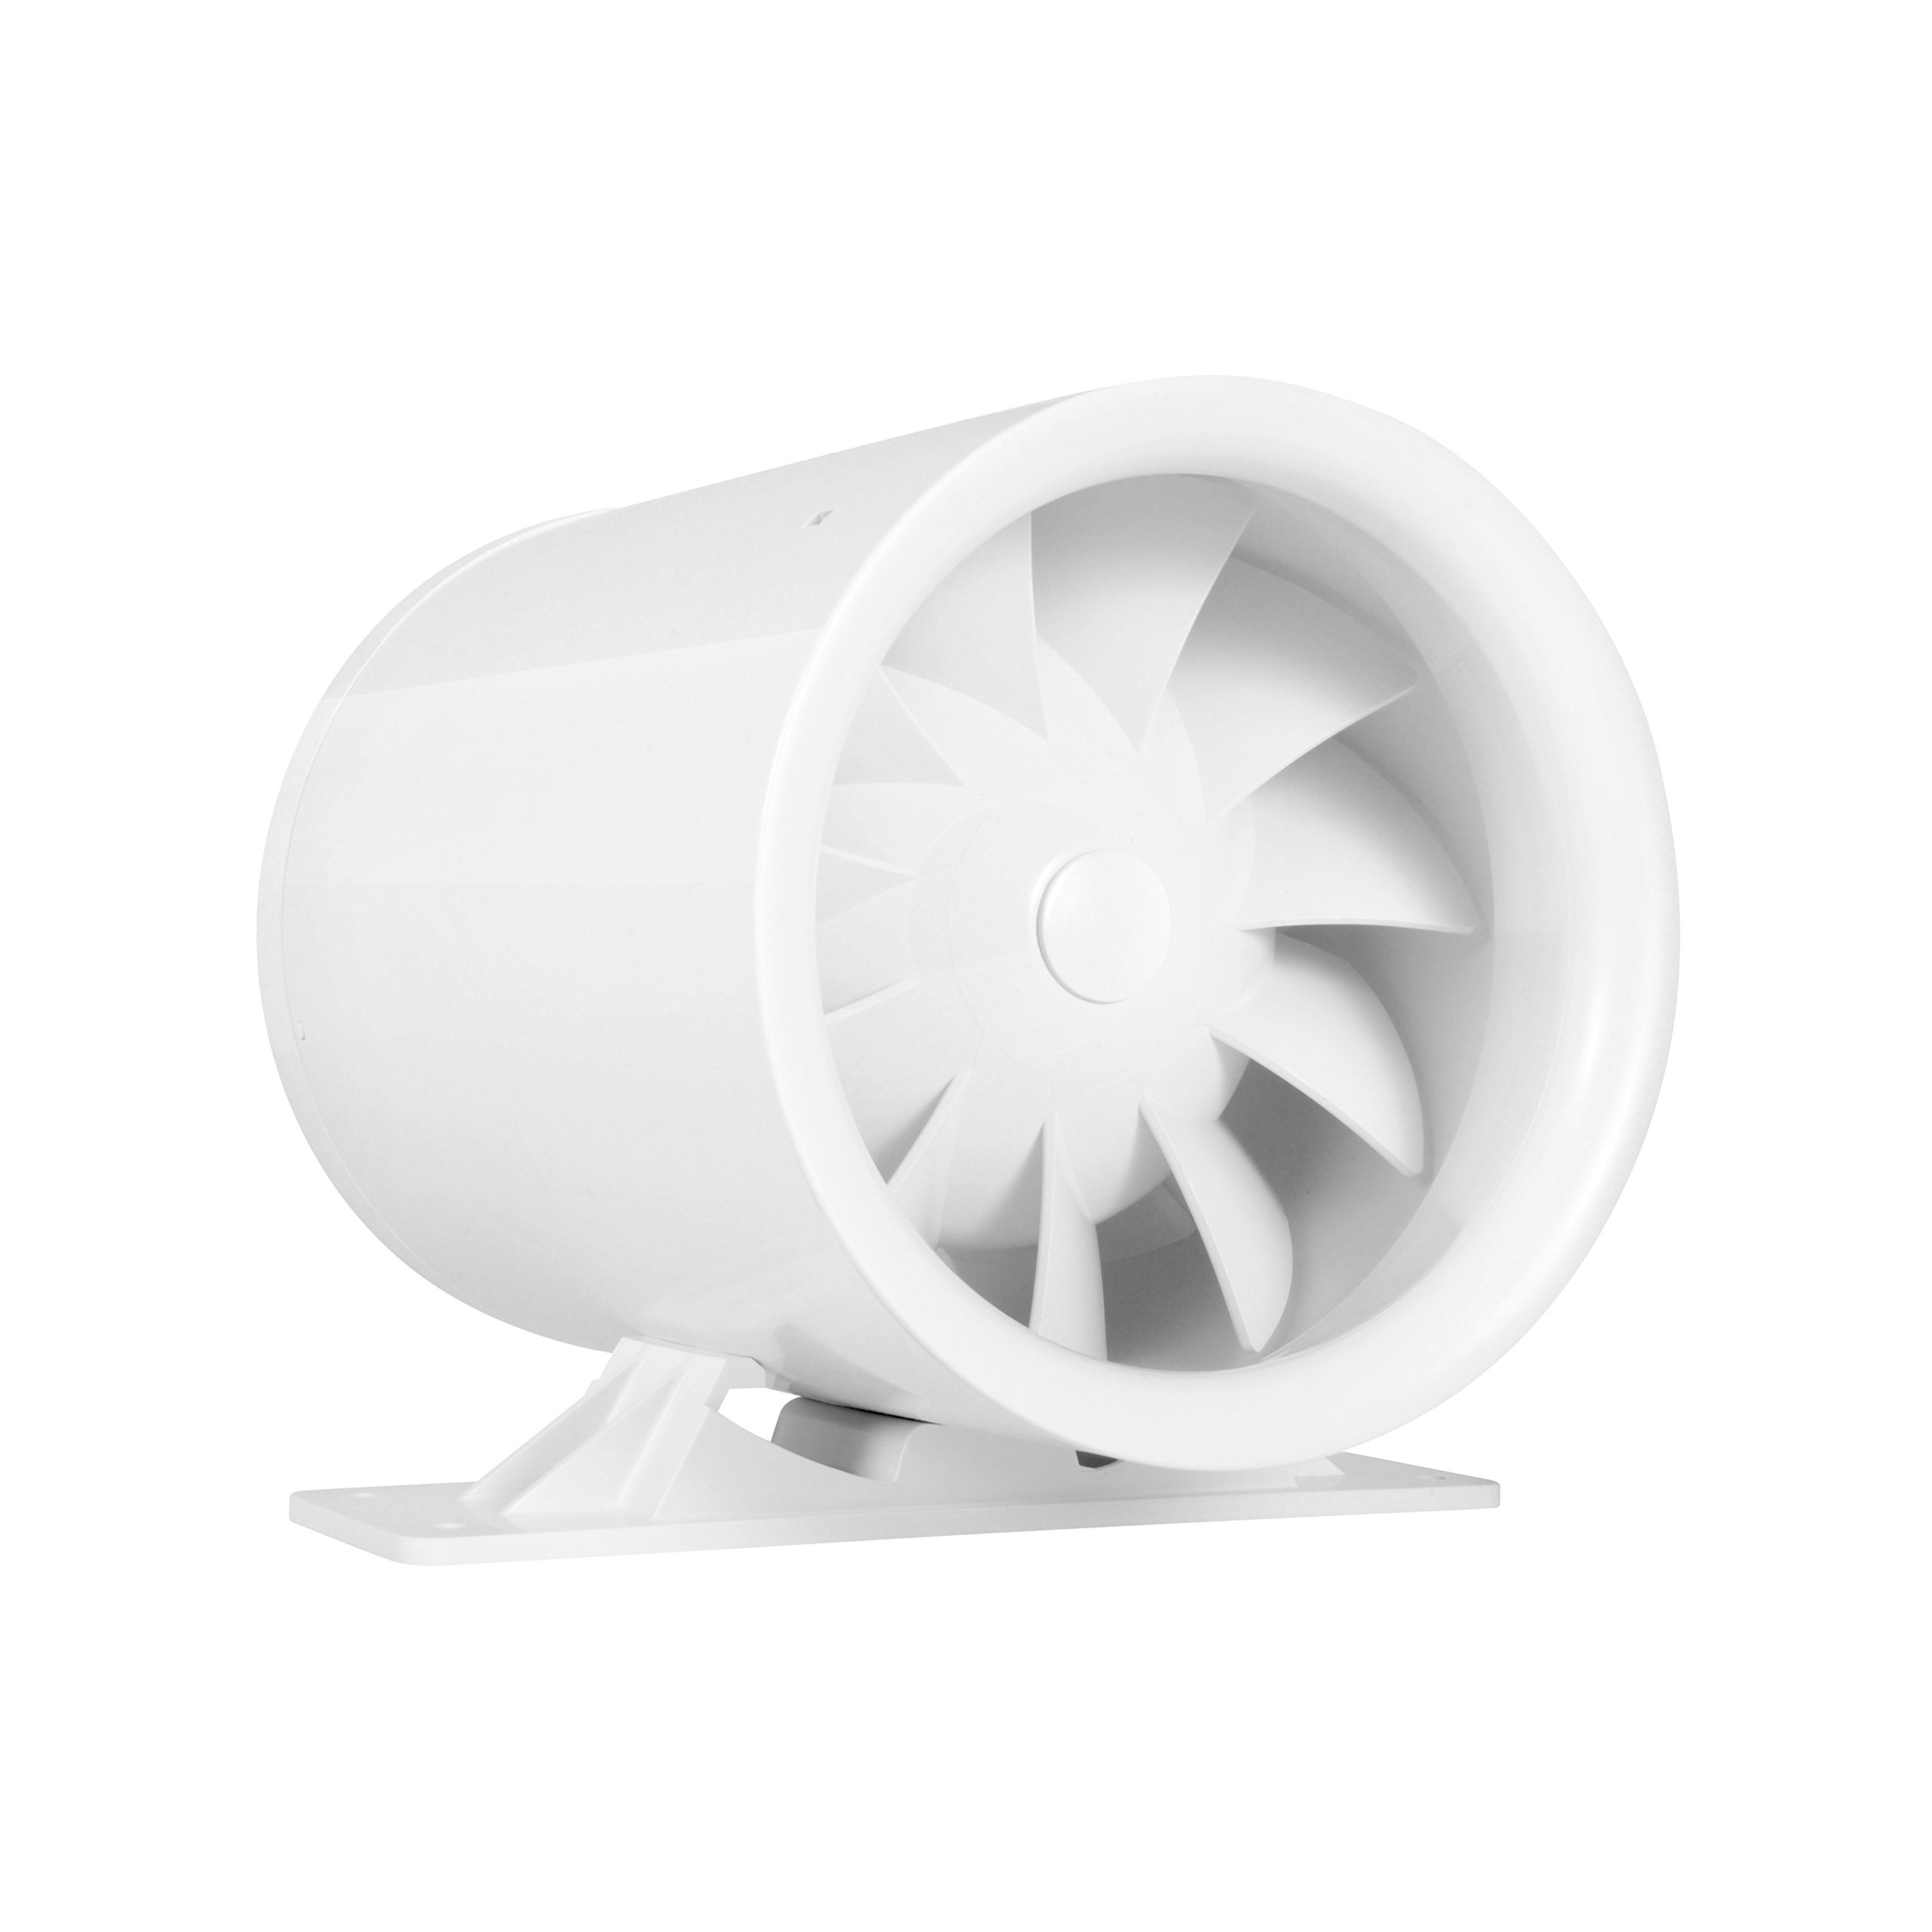 4'' Silent Inline Duct Booster Fan, 47 CFM, Intake Quiet Mixed Flow Energy Efficient Blower for Air Circulation in Ducting, Vents, Grow Tents